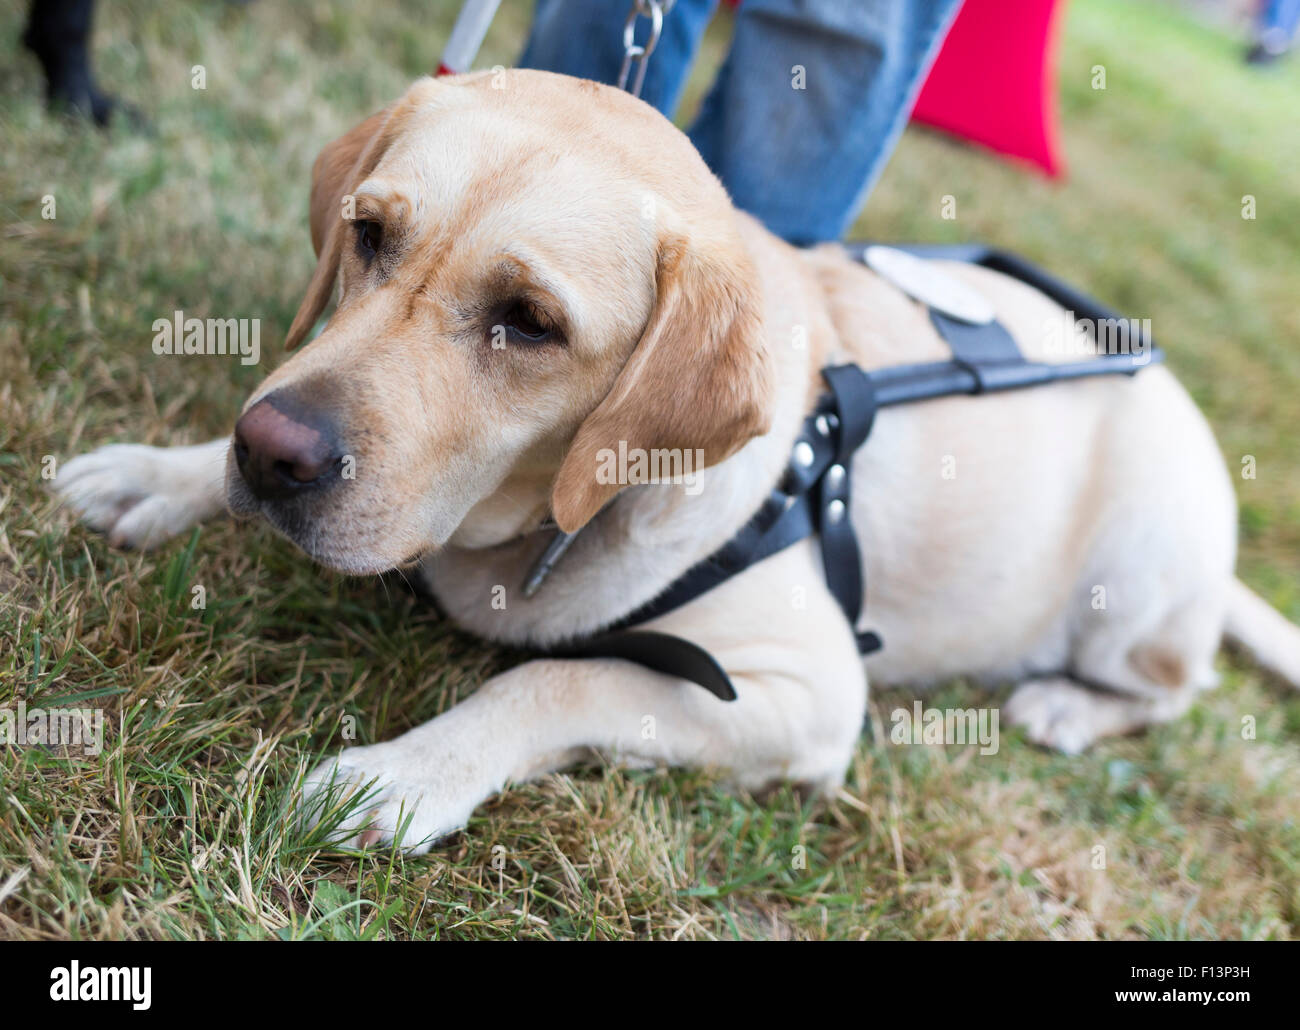 Labrador retriever guide dog before the last training for the animal. The dogs are undergoing various trainings - Stock Image